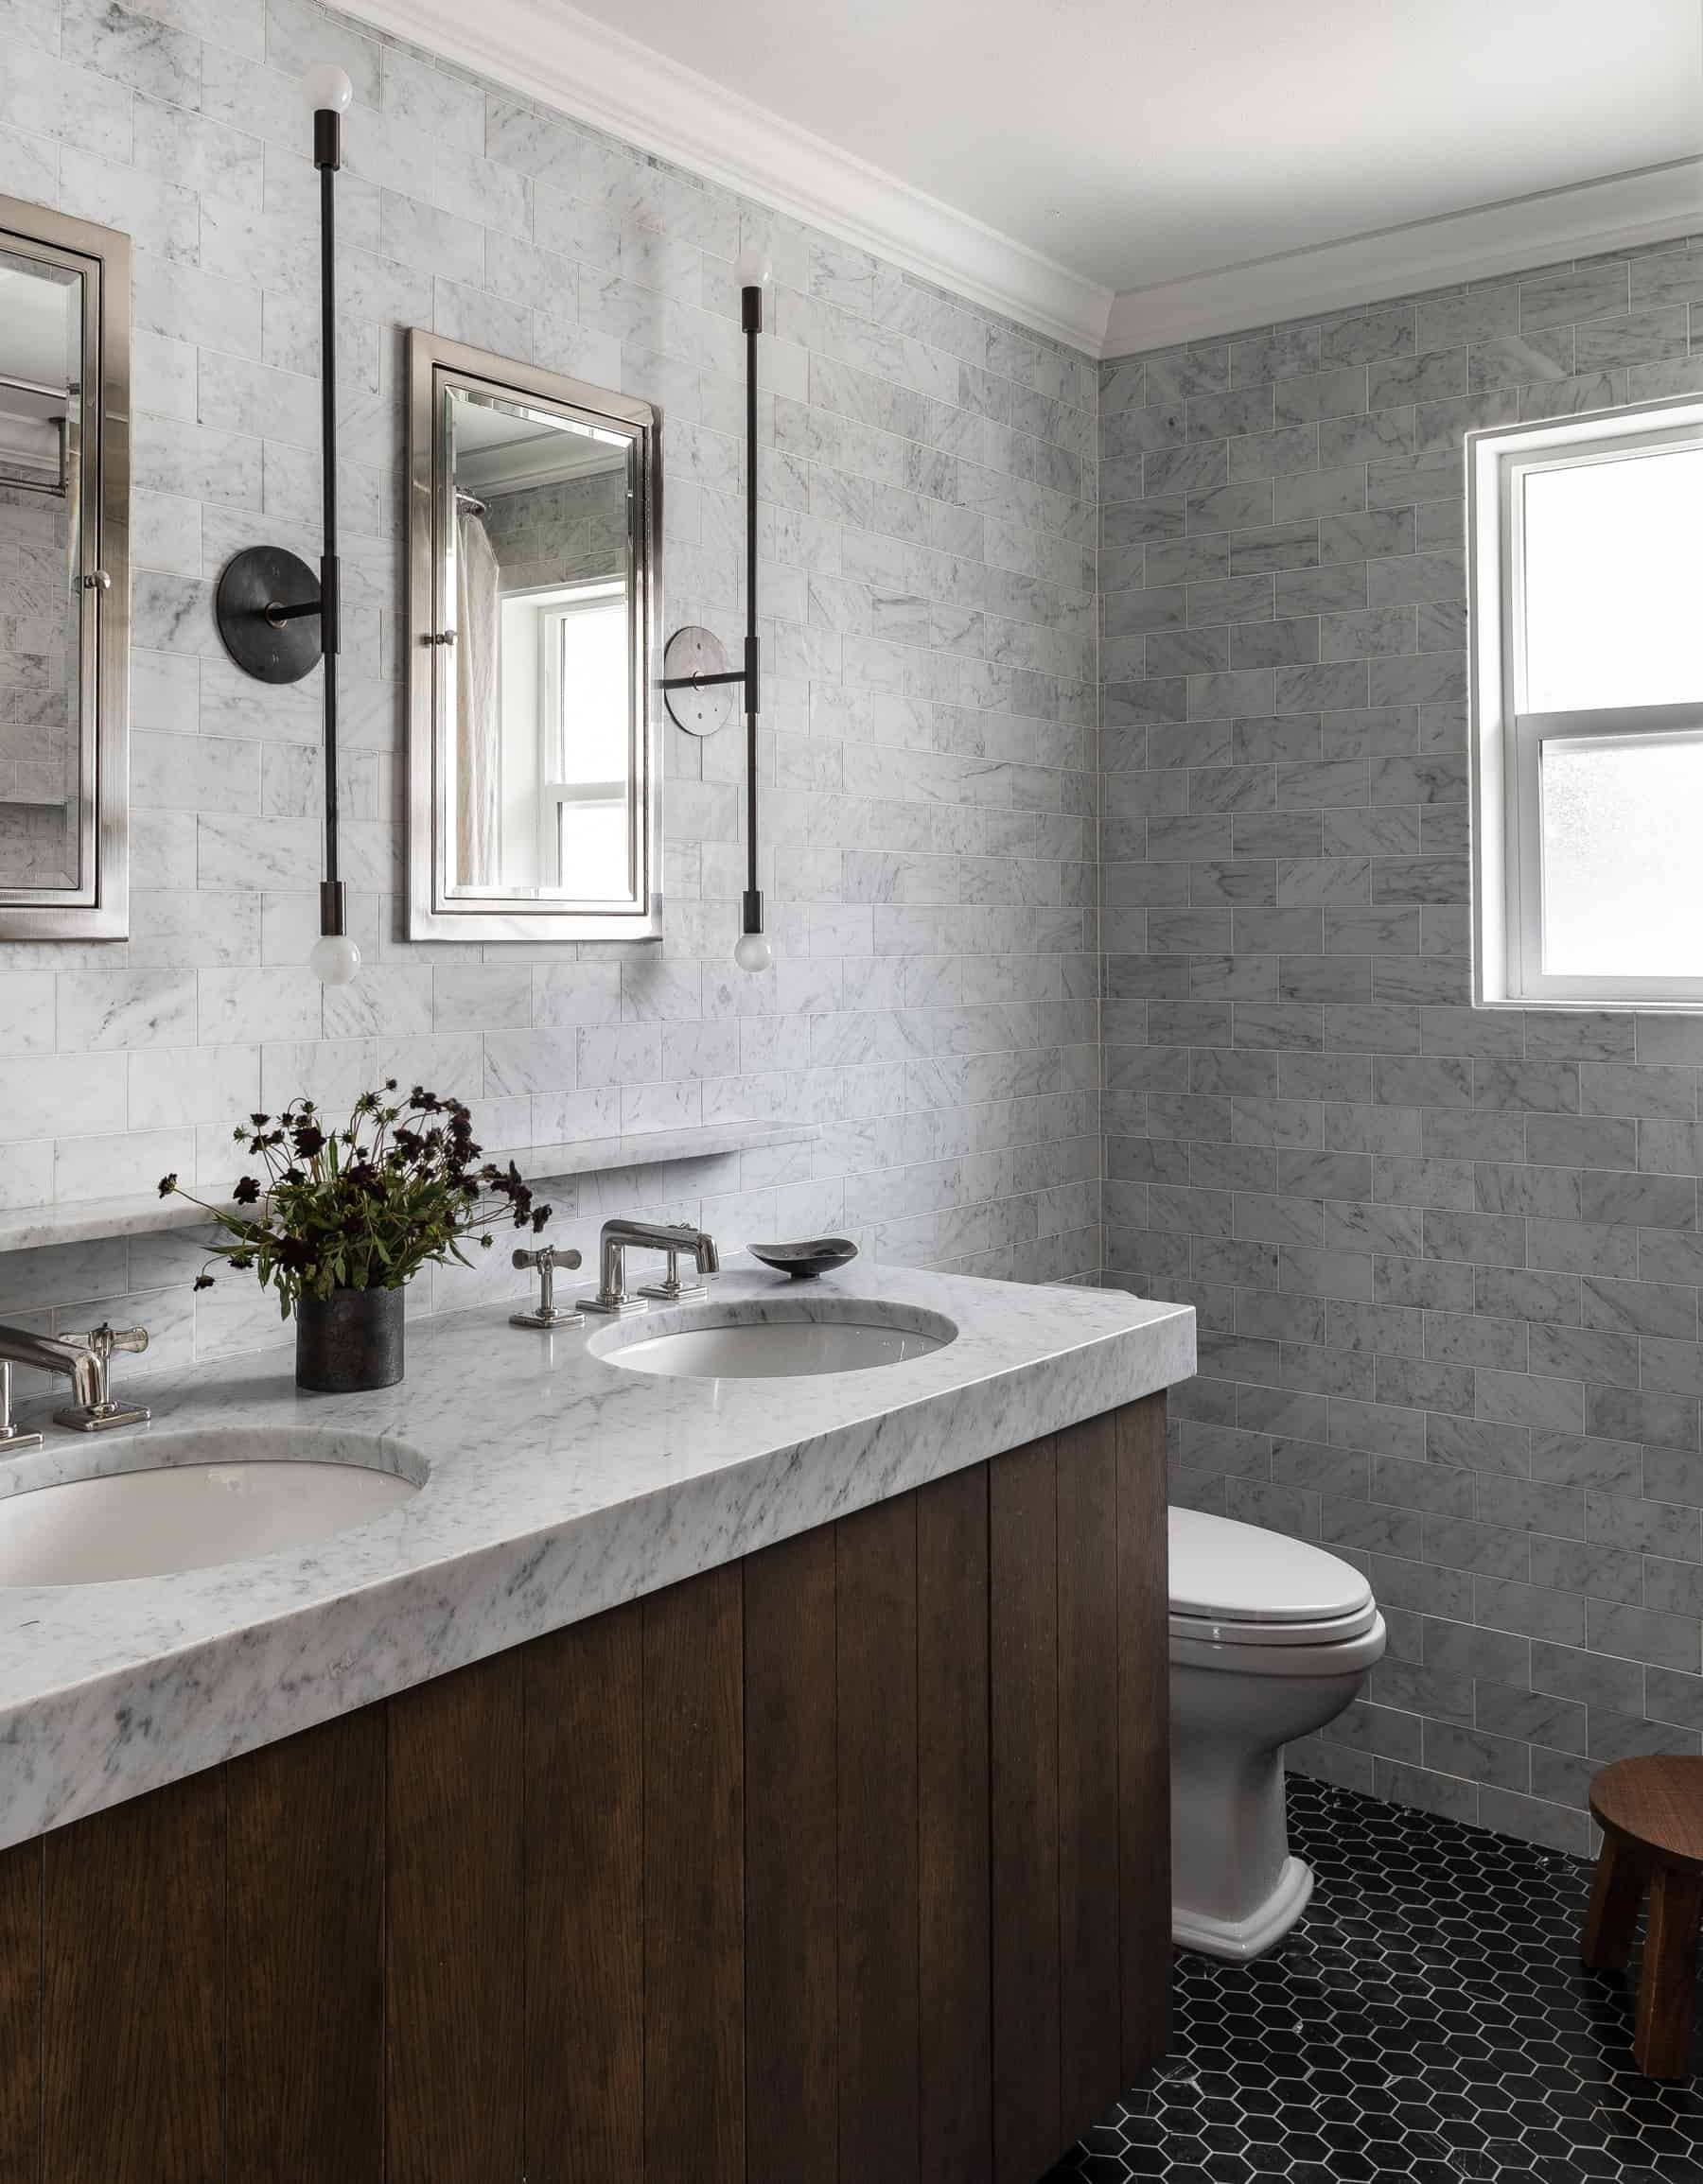 Traditional Interior Design By Ownby: Heidi-Caillier-Design-Seattle-interior-designer-Ballard-Cottage-modern-traditional-bathroom